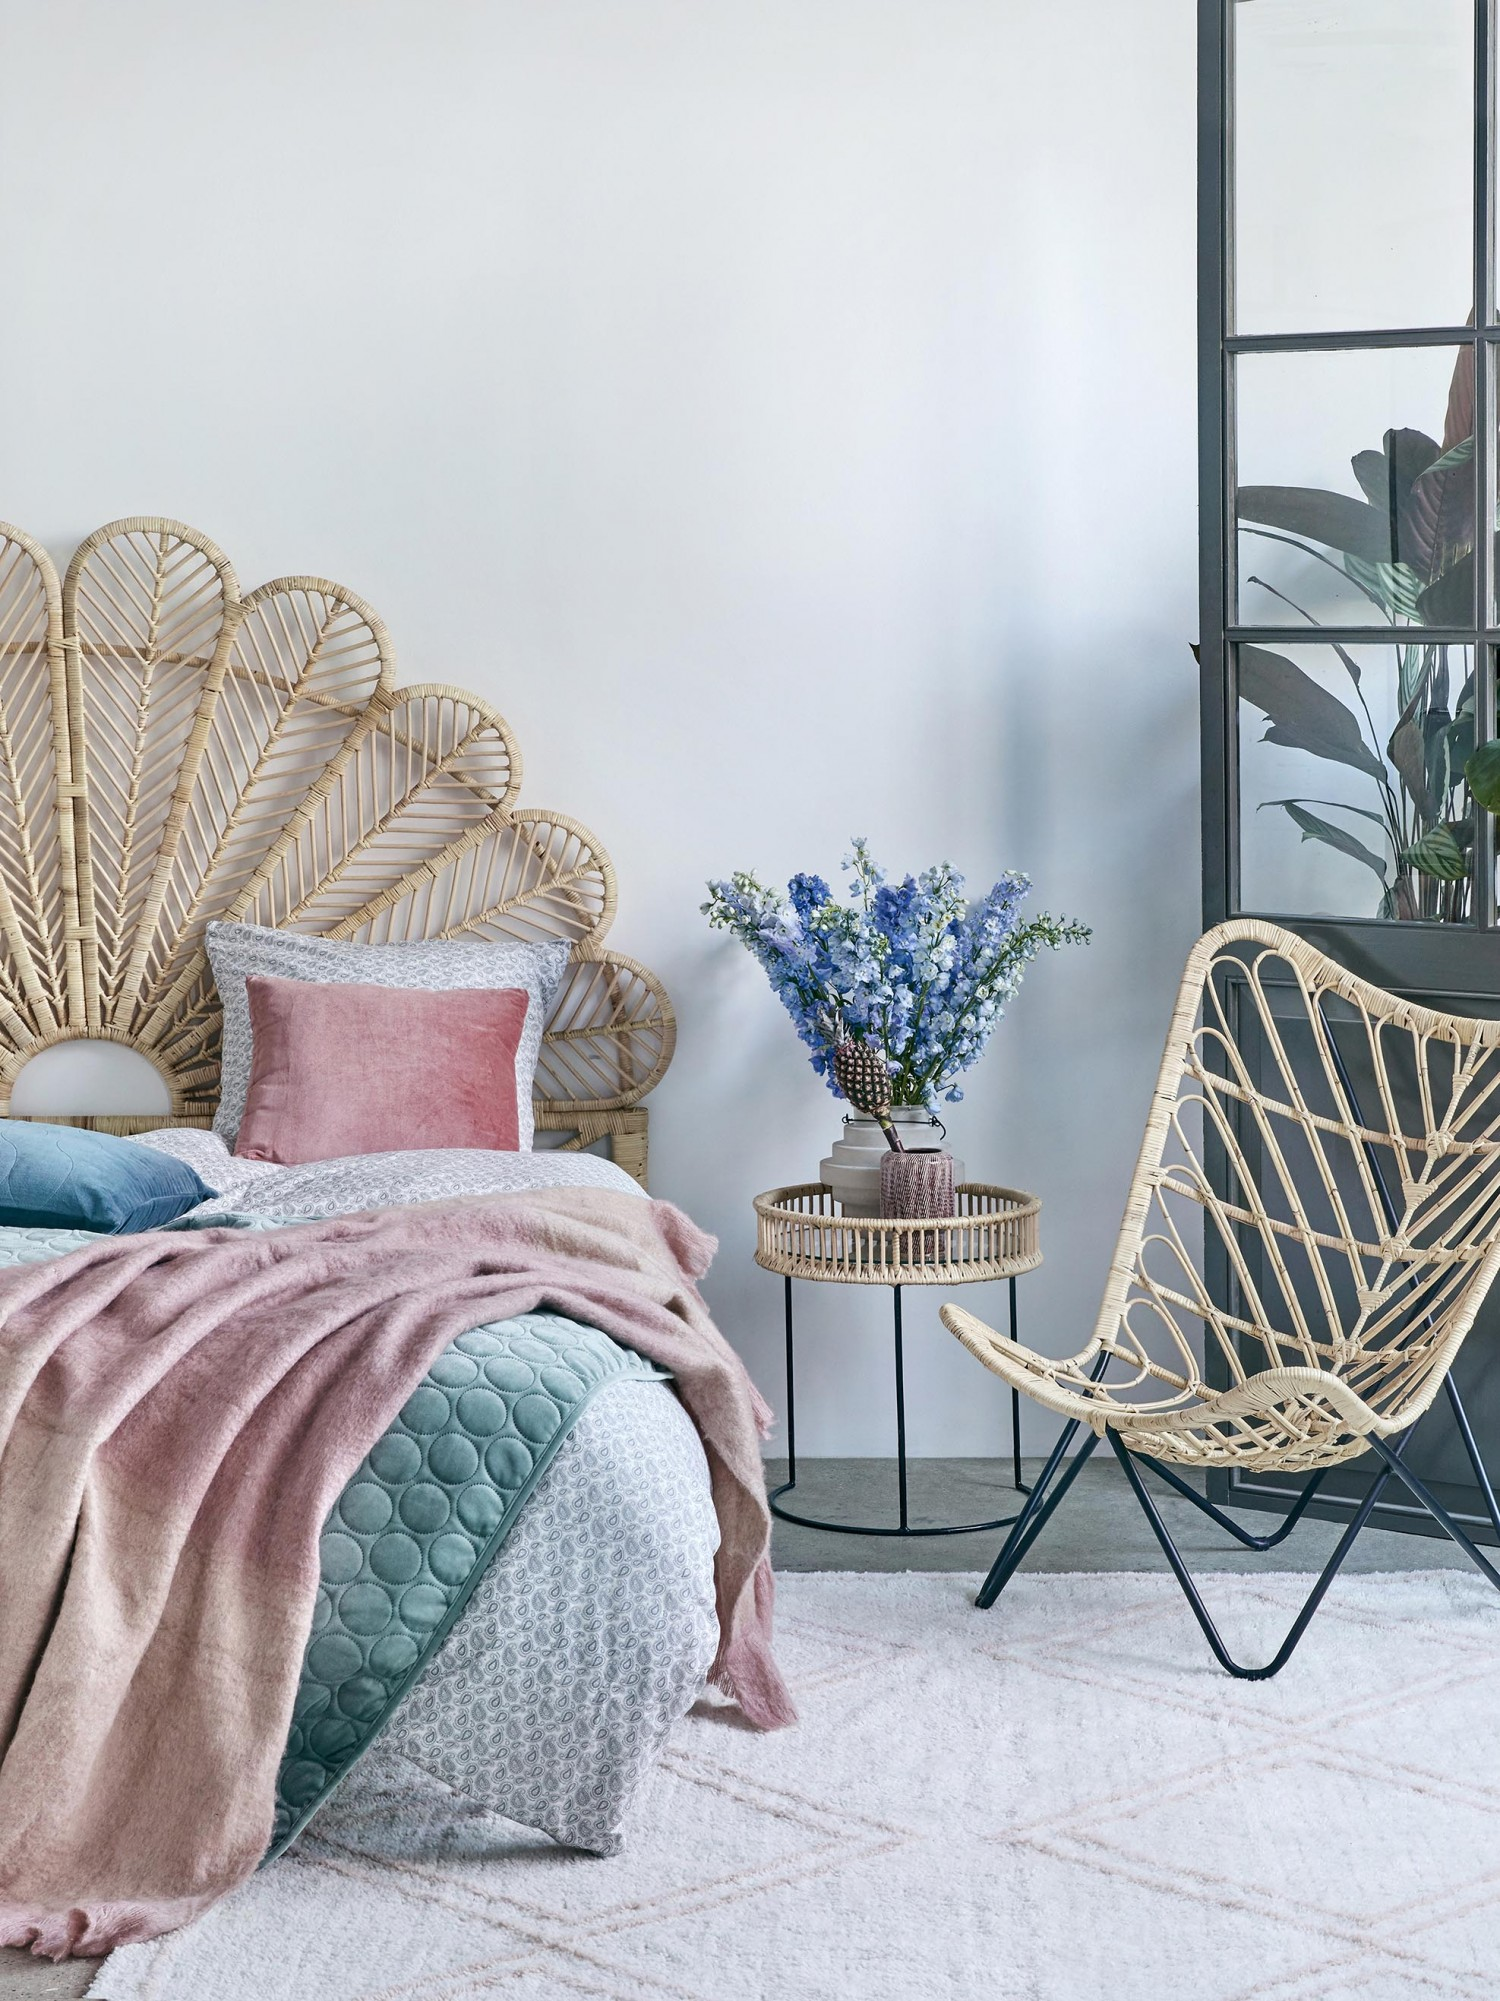 These new rattan furnitures are from Coop.